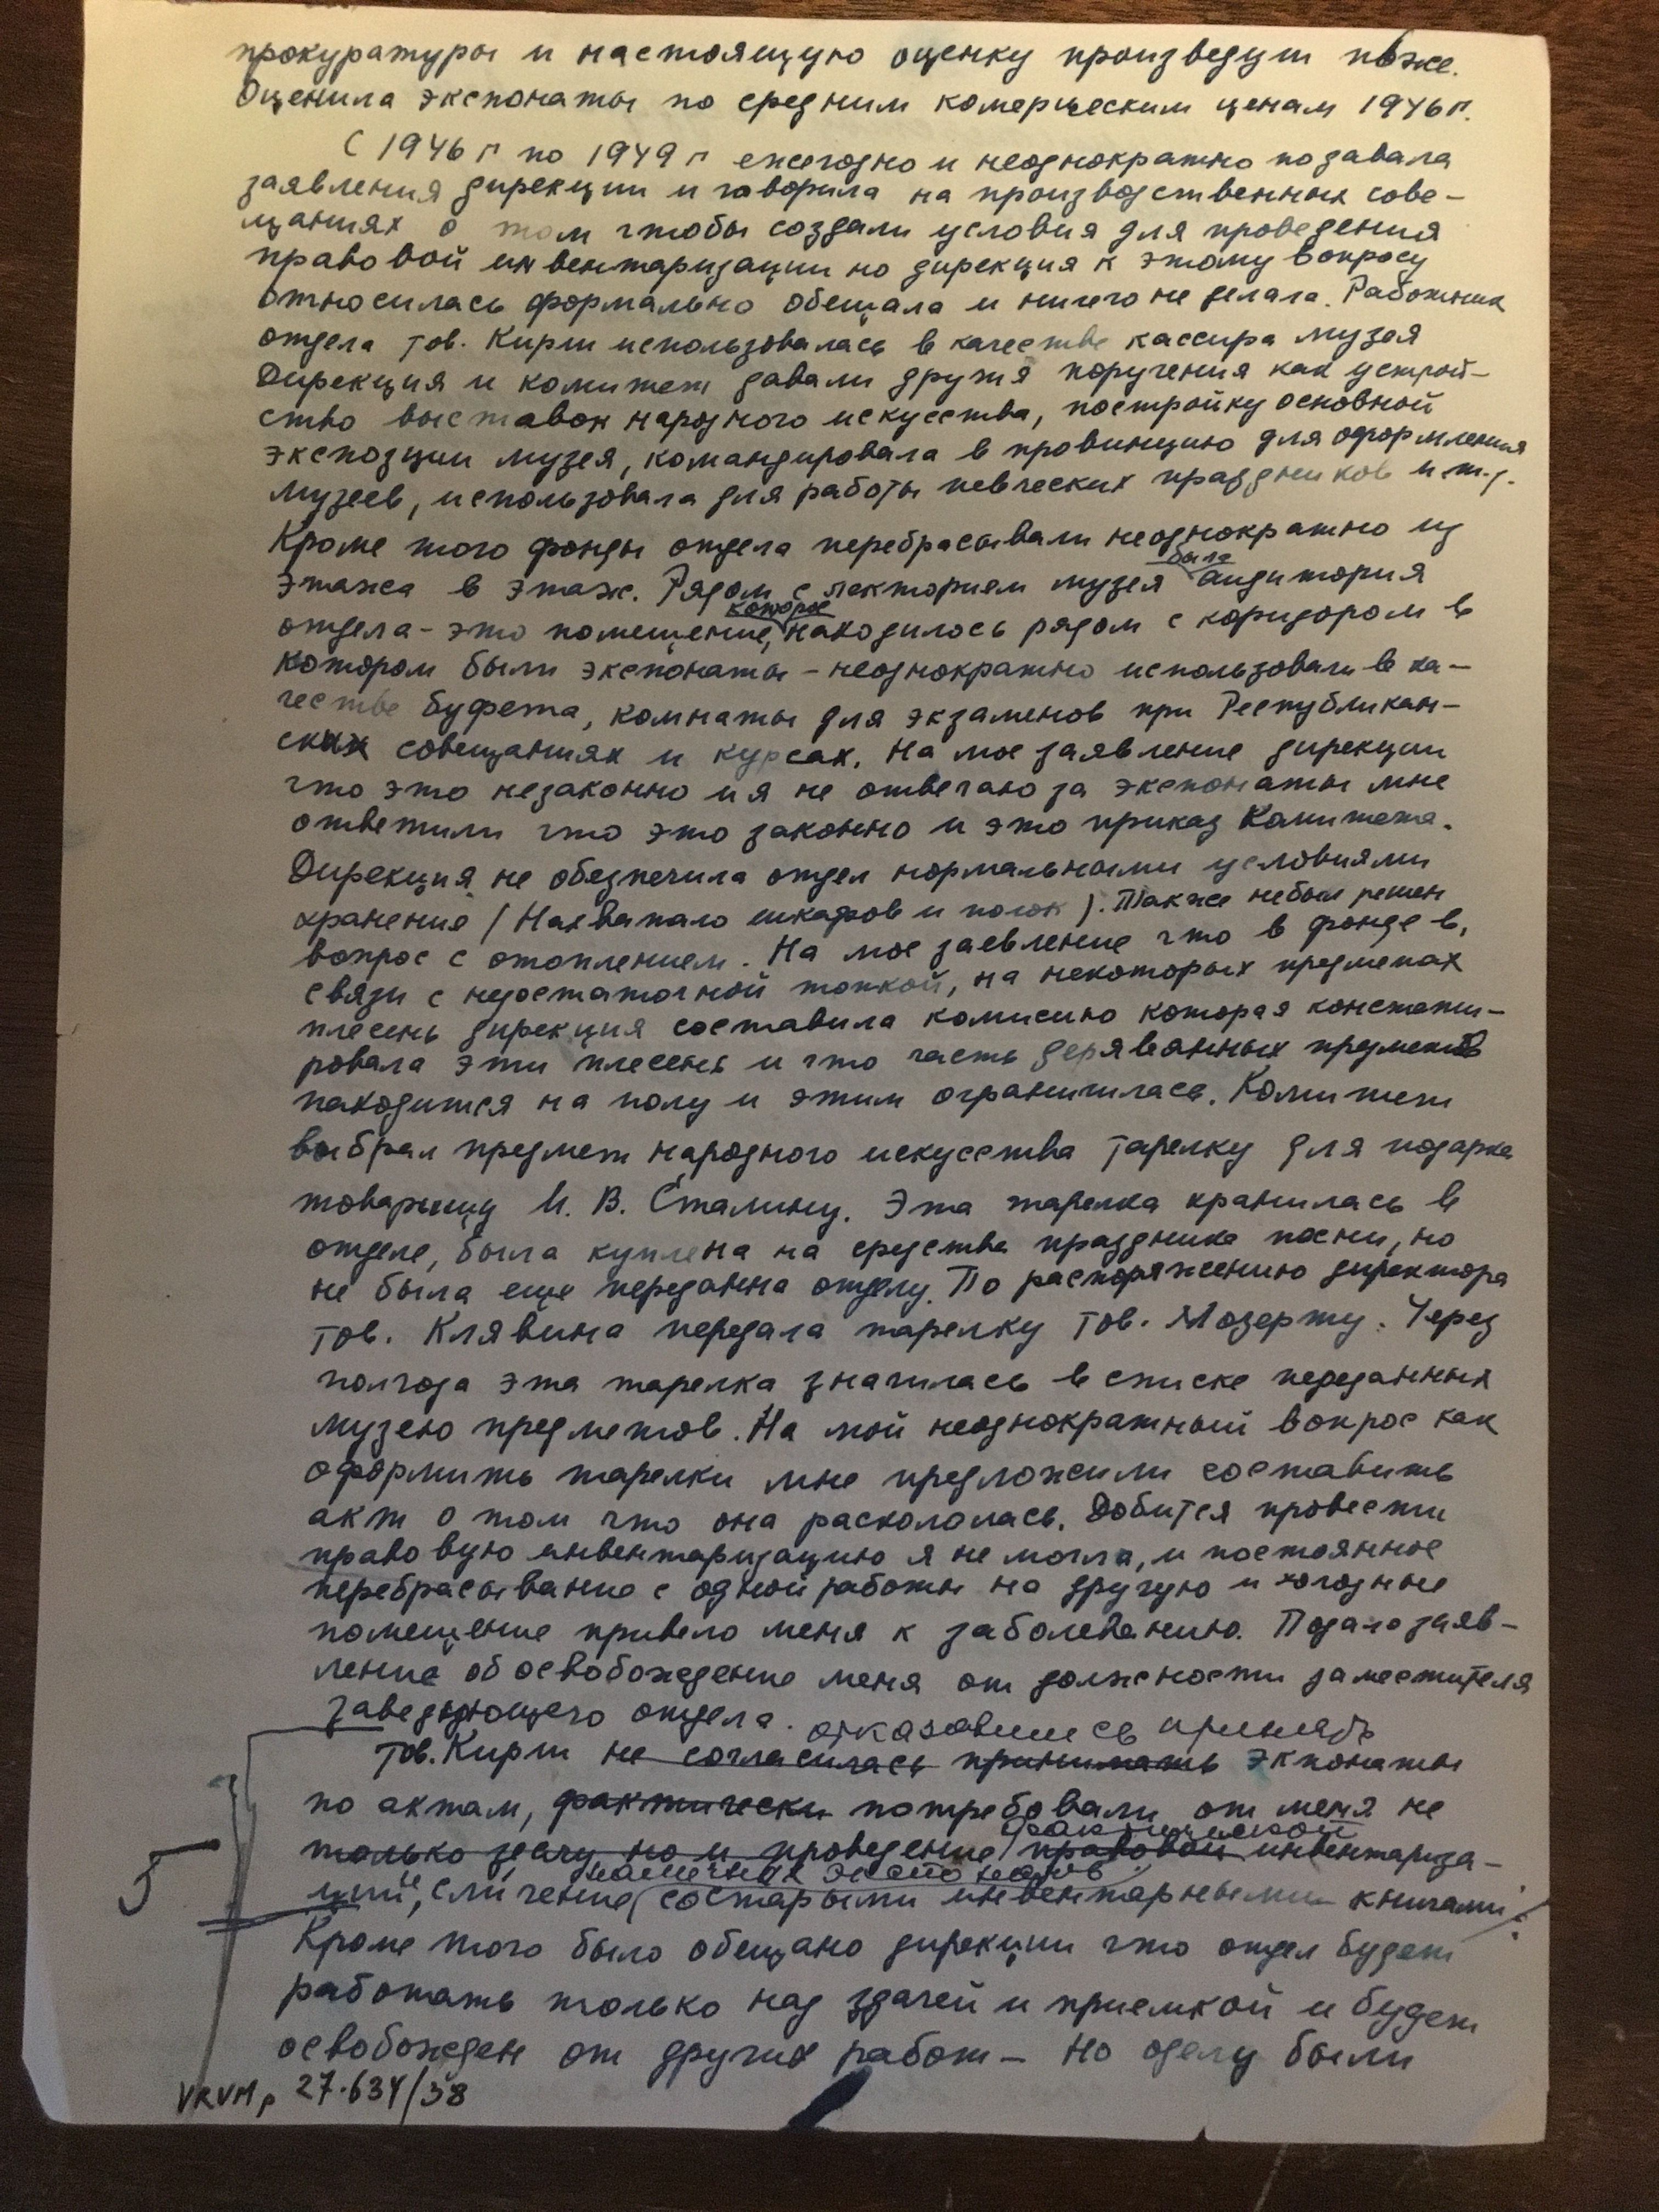 An excerpt from a draft explanation written by Mērija Grīnberga at beginning of 1950 to the LSSR State Control Ministry about why collections of the Ethnography Department of the Historical Museum were not handed-over according to rules.